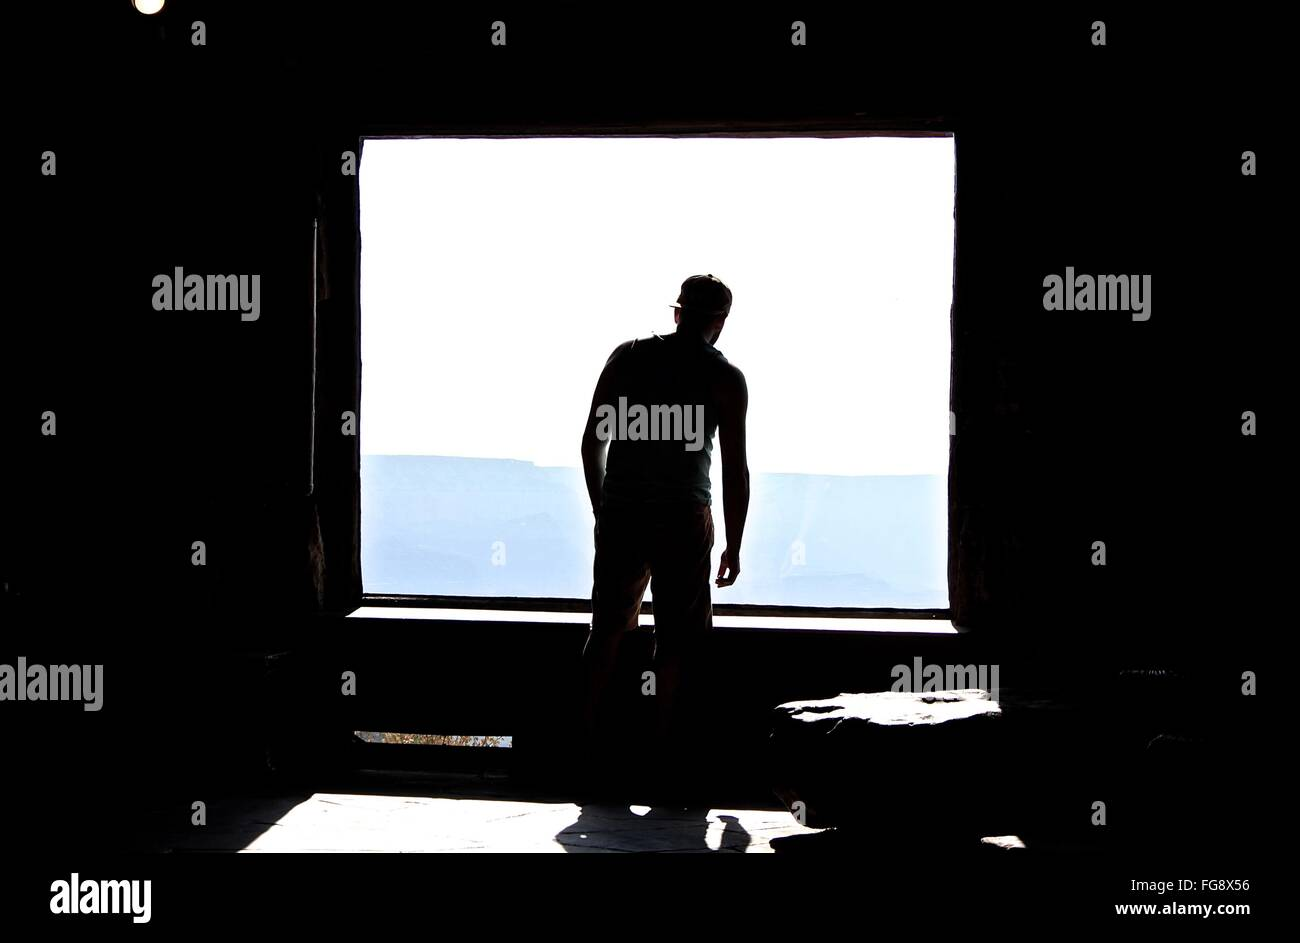 Rear View Of Man By Window - Stock Image